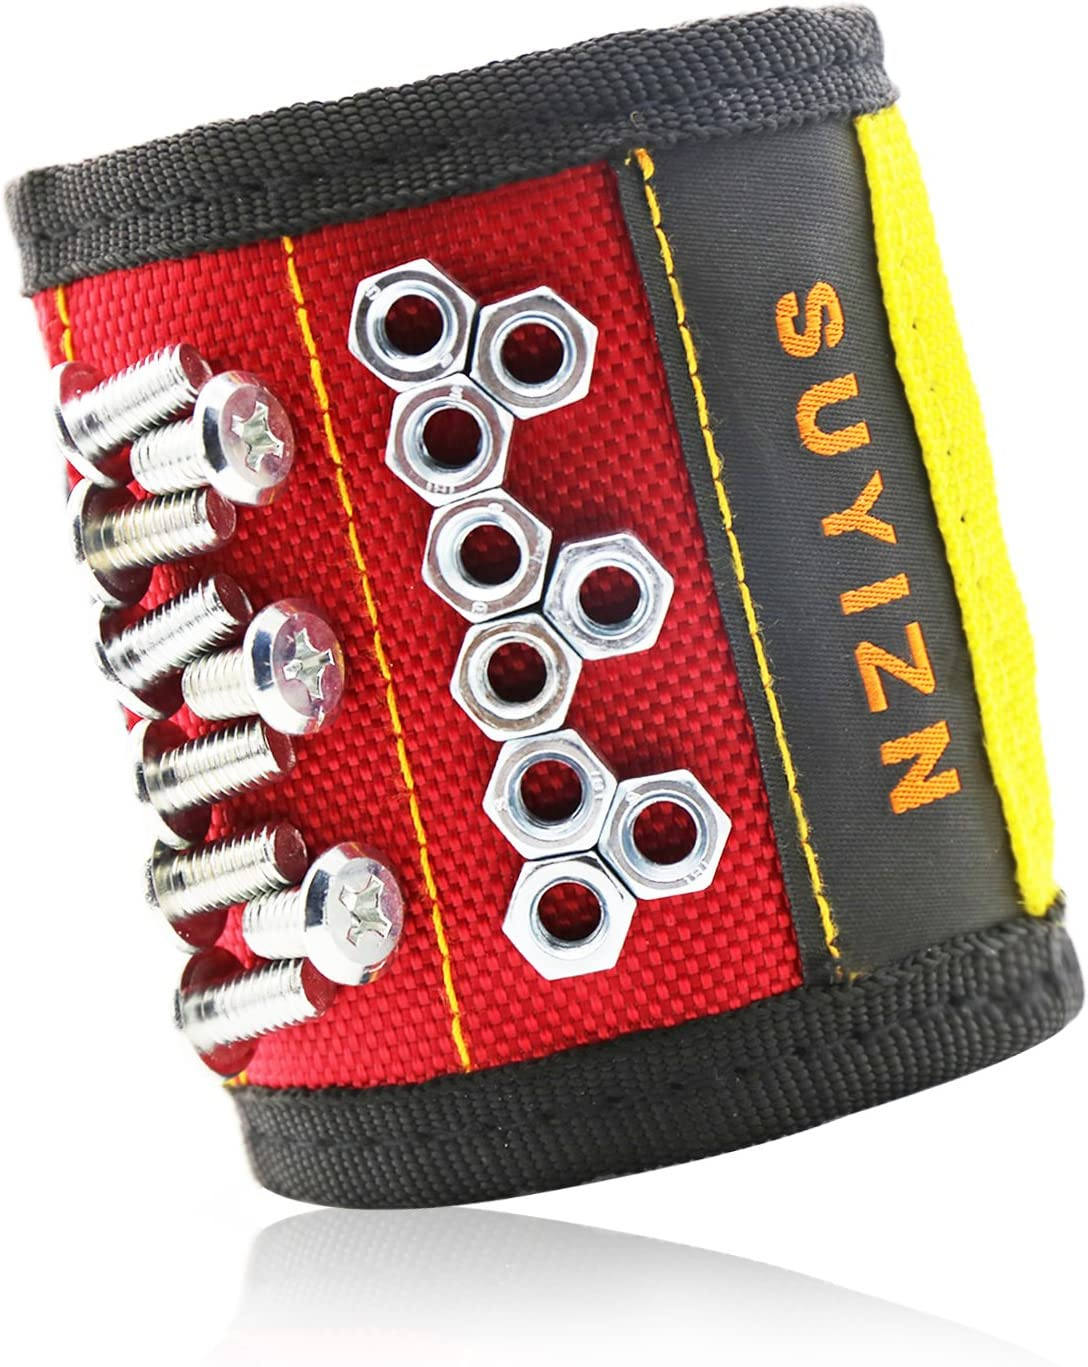 Max 74% OFF SUYIZN Magnetic Wristband With High-Strength Easy-to-use Band Used